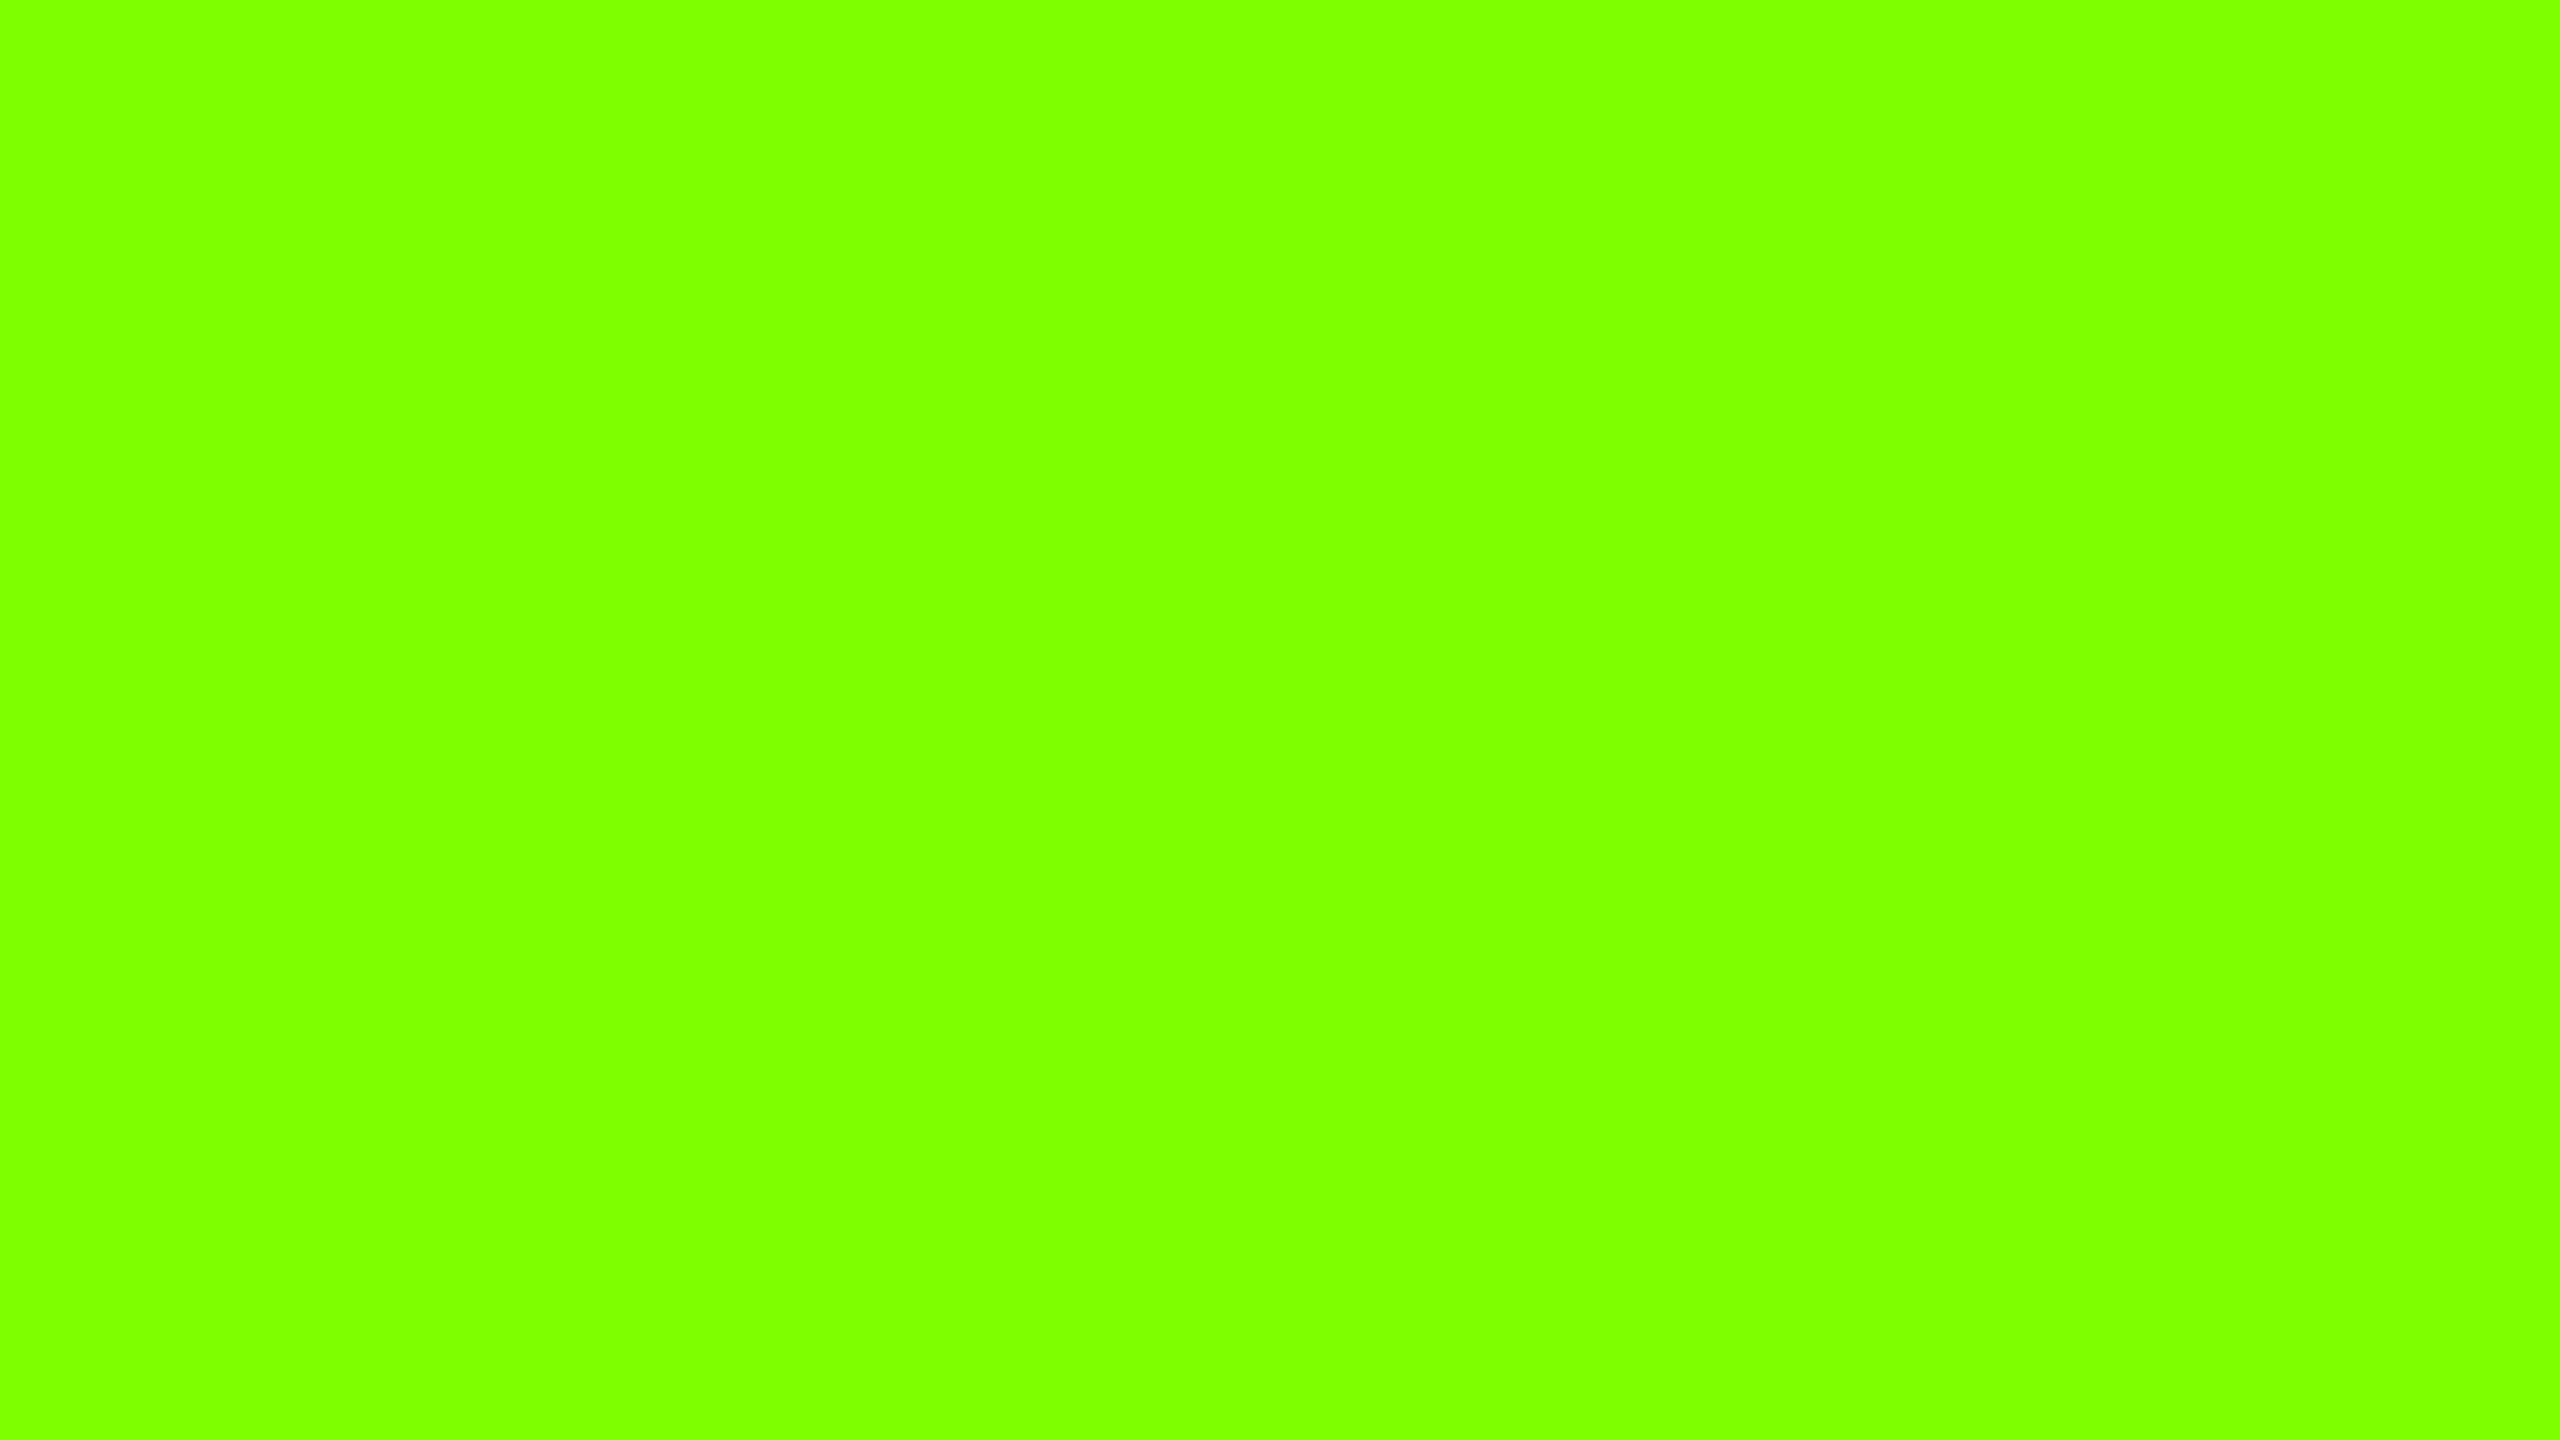 2560x1440 Chartreuse For Web Solid Color Background